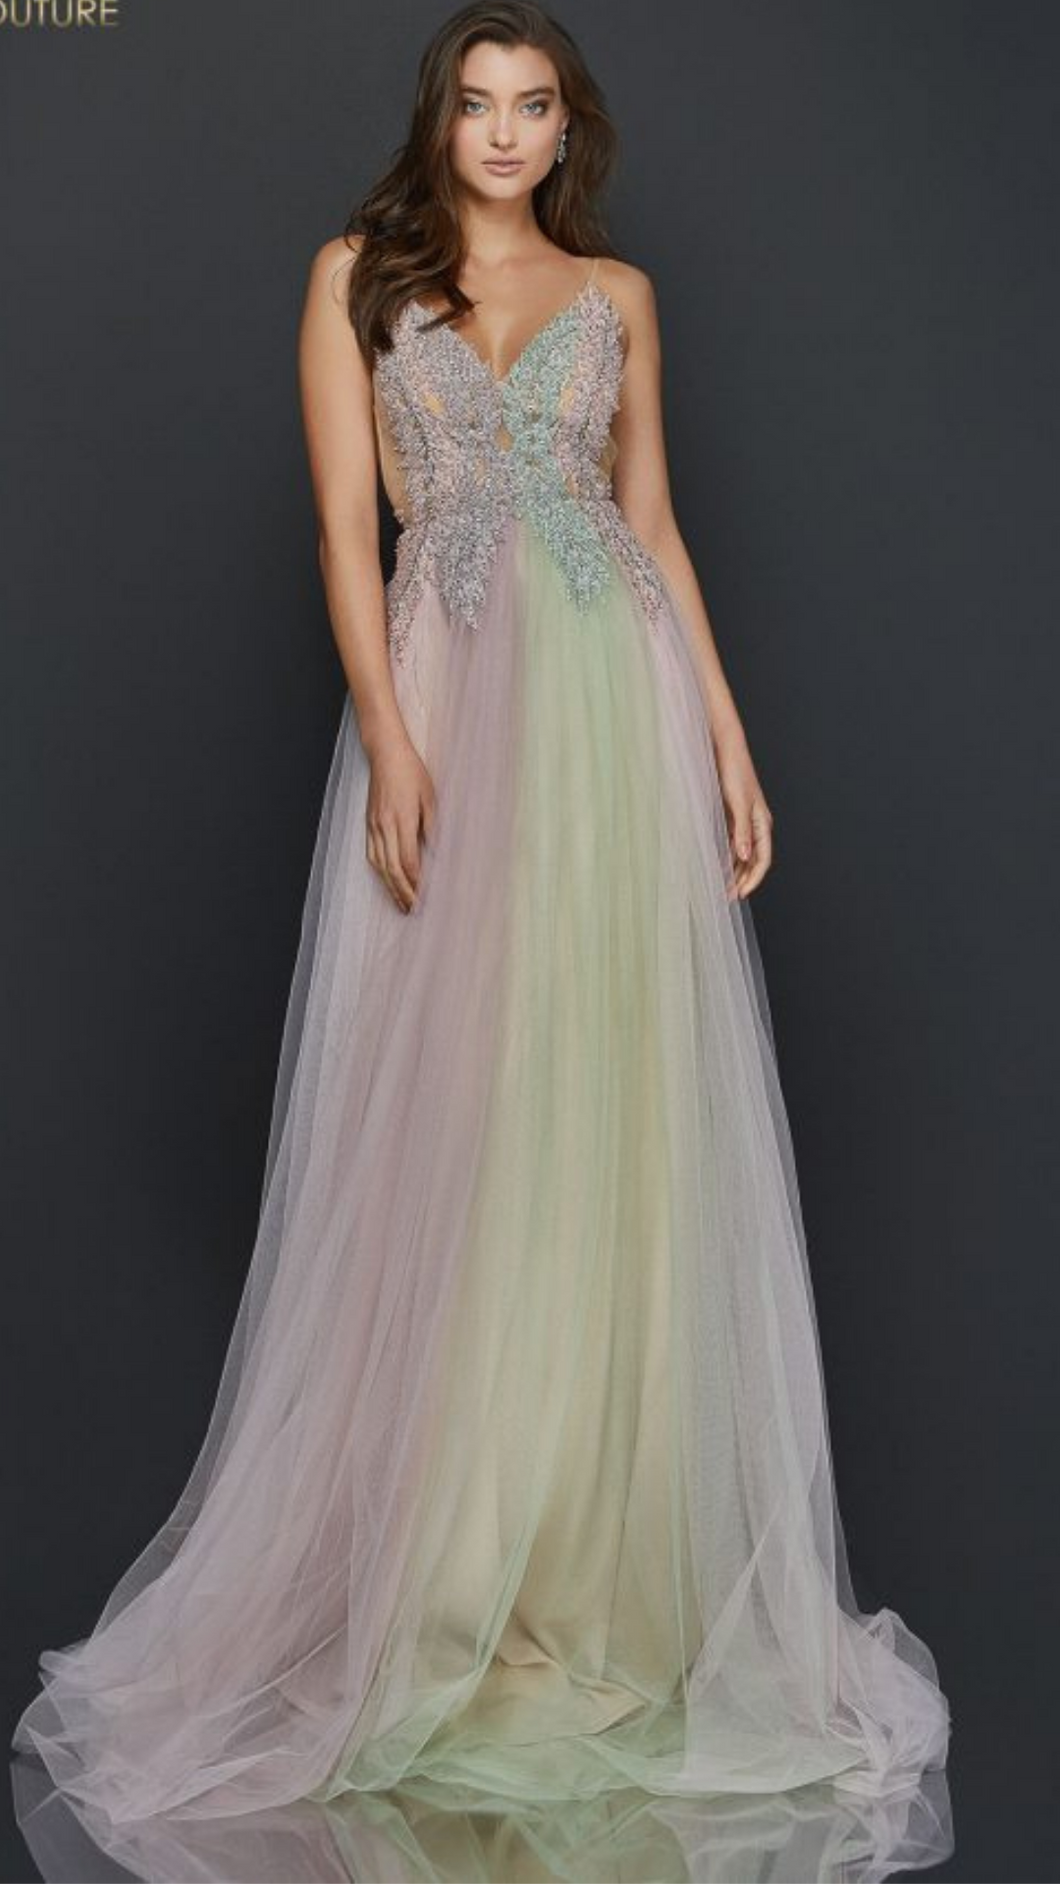 Pearl Beaded Long Prom Gown - ONFEMME By Lindsey's Kloset